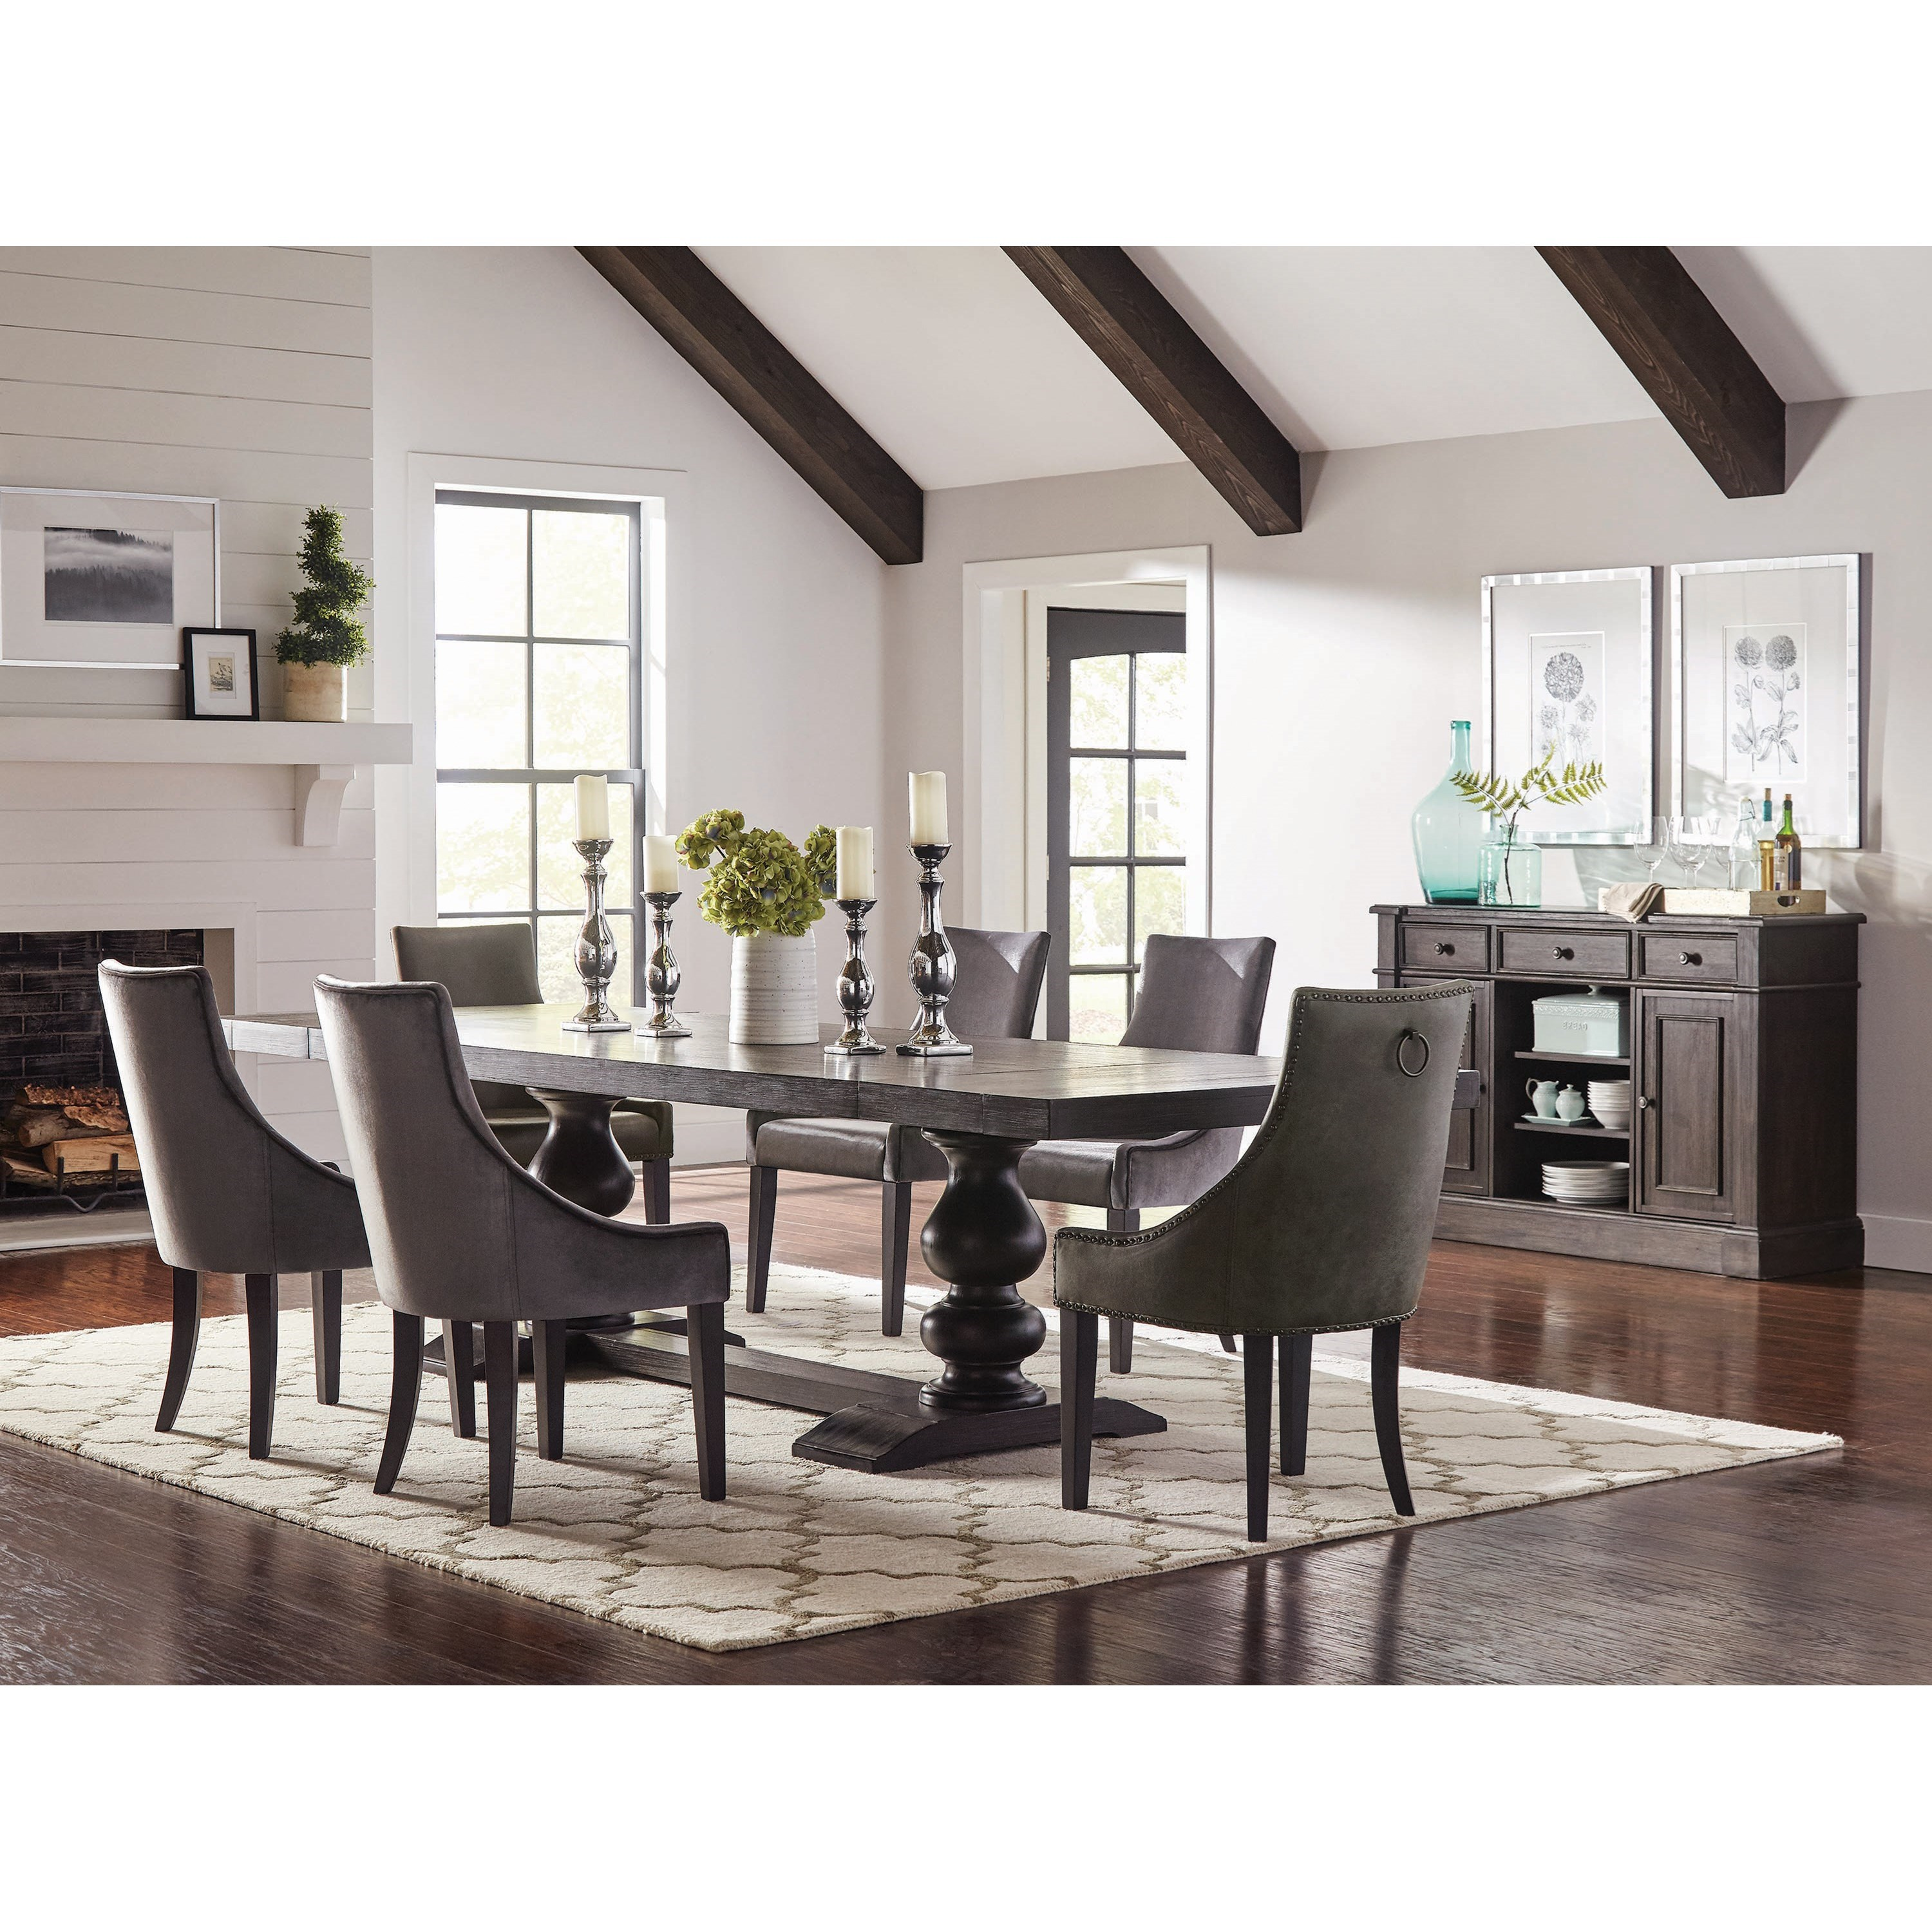 Rectangular Dining Room Tables With Leaves: Coaster Phelps Transitional Rectangular Dining Room Table